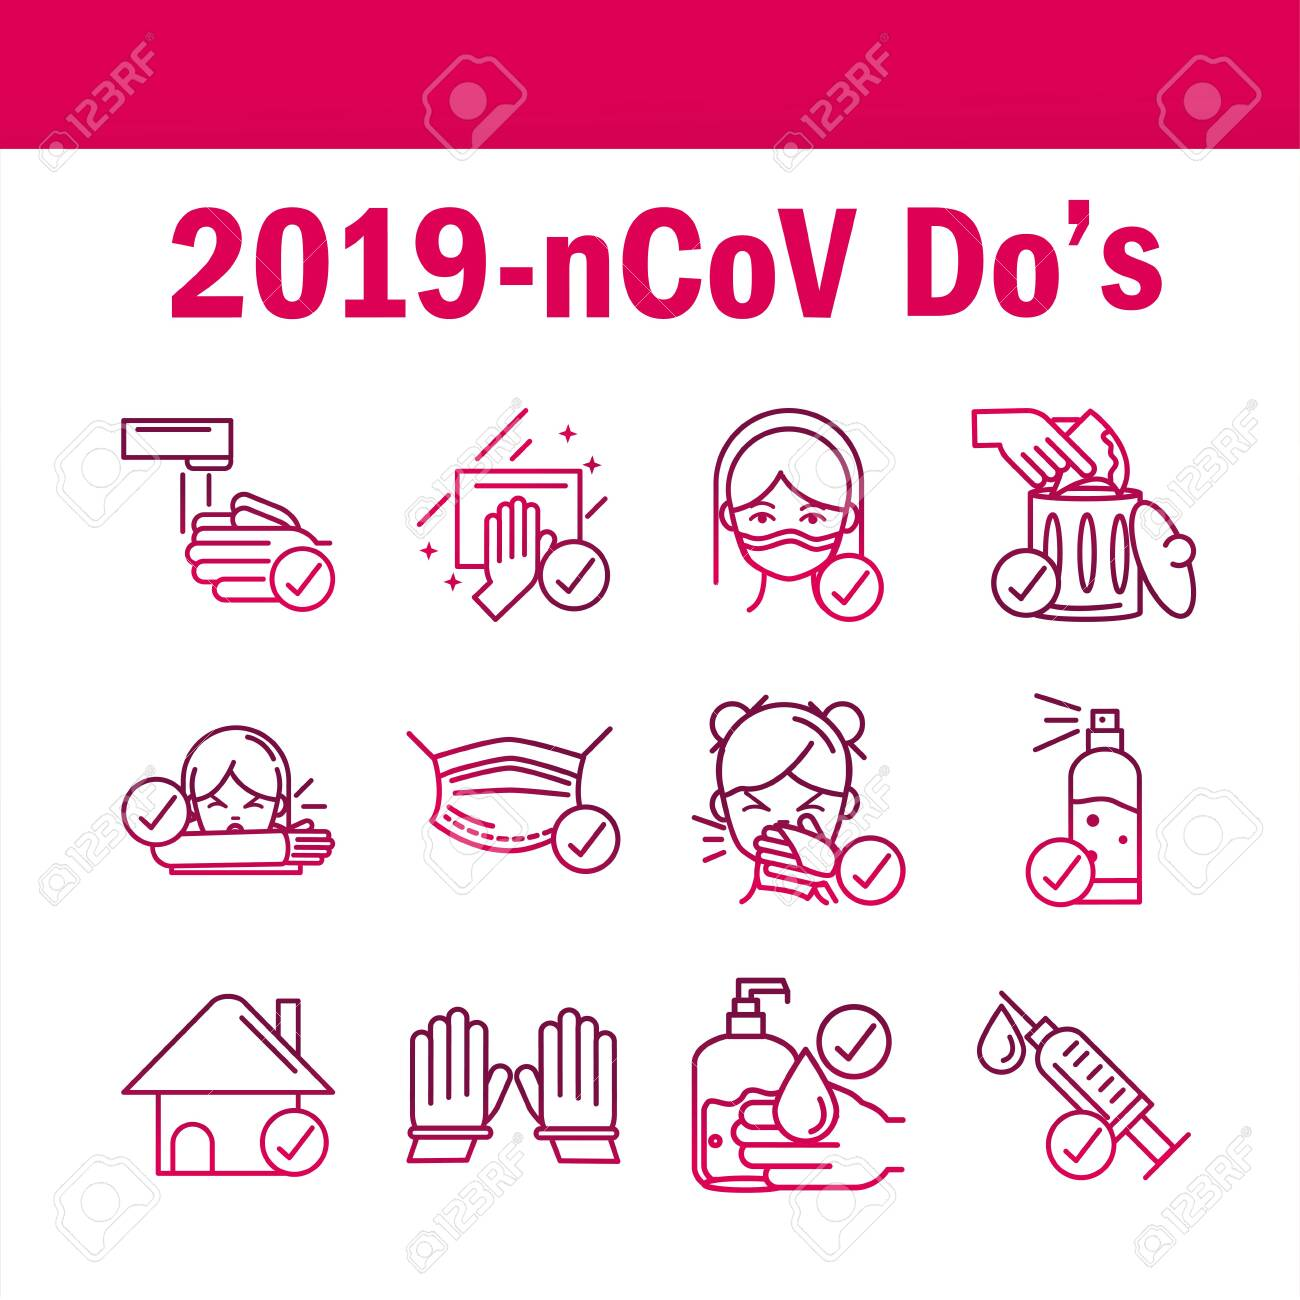 avoid and prevent spread of covid19 icons set gradient icon - 143311407